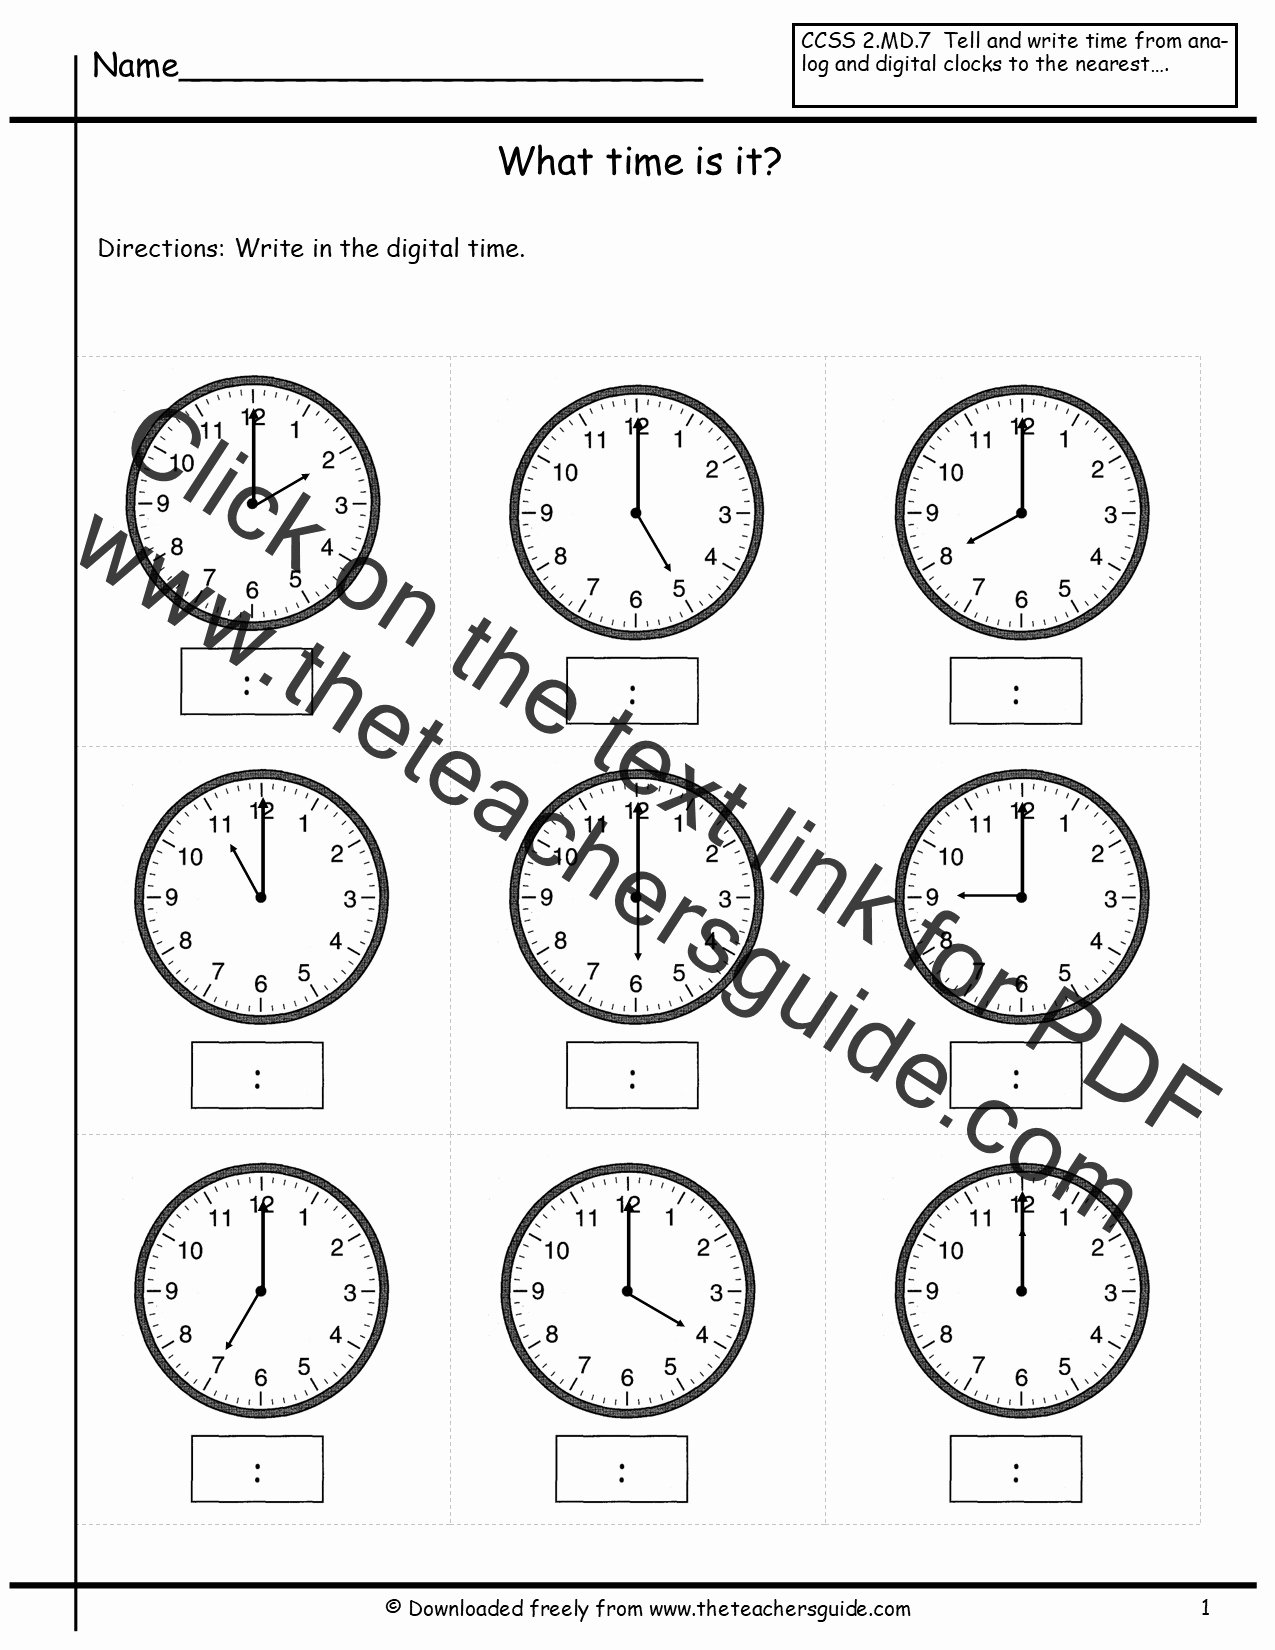 Multiplication Worksheets by 3 Inspirational Worksheets Telling Time Worksheets From the Teacher Guide